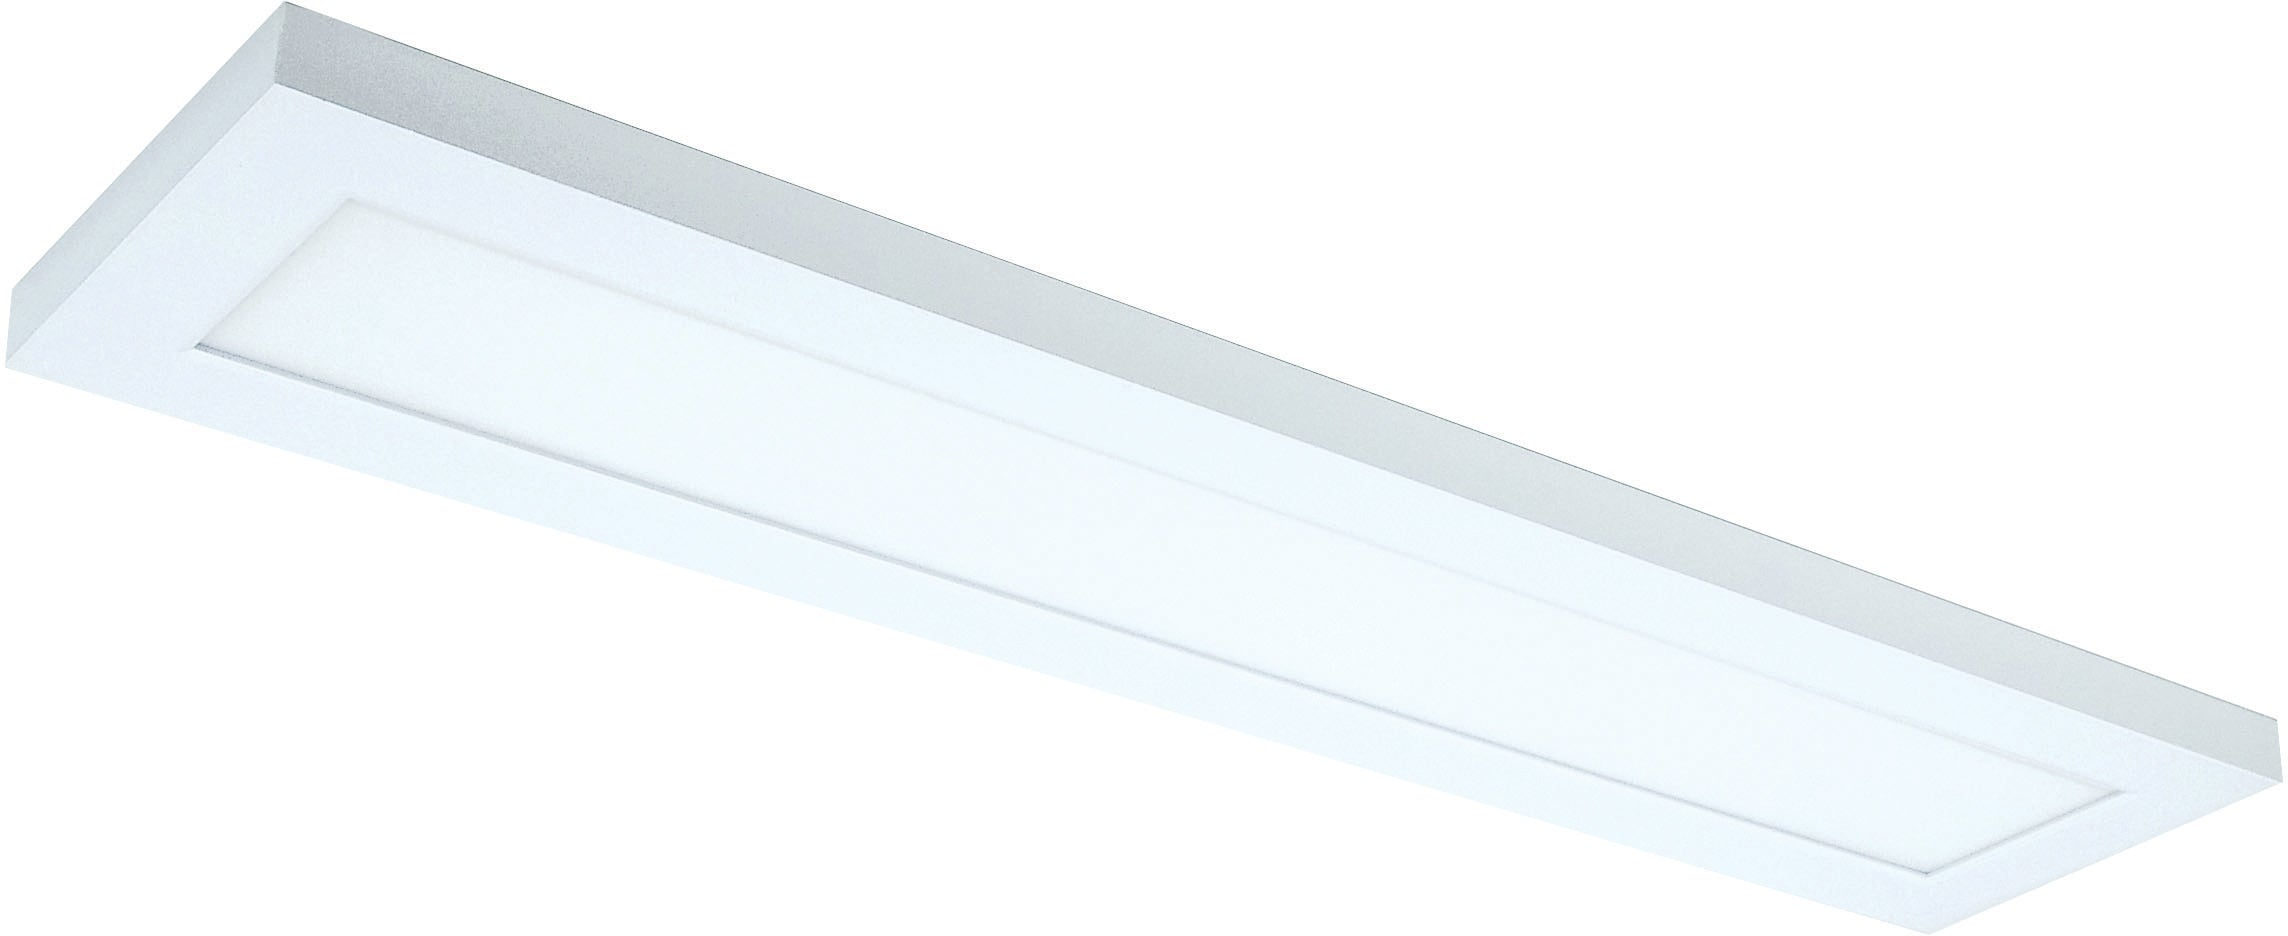 Nuvo 22w Blink Plus 5 x 24 Surface Mount LED 120-277v in White Finish 4000k